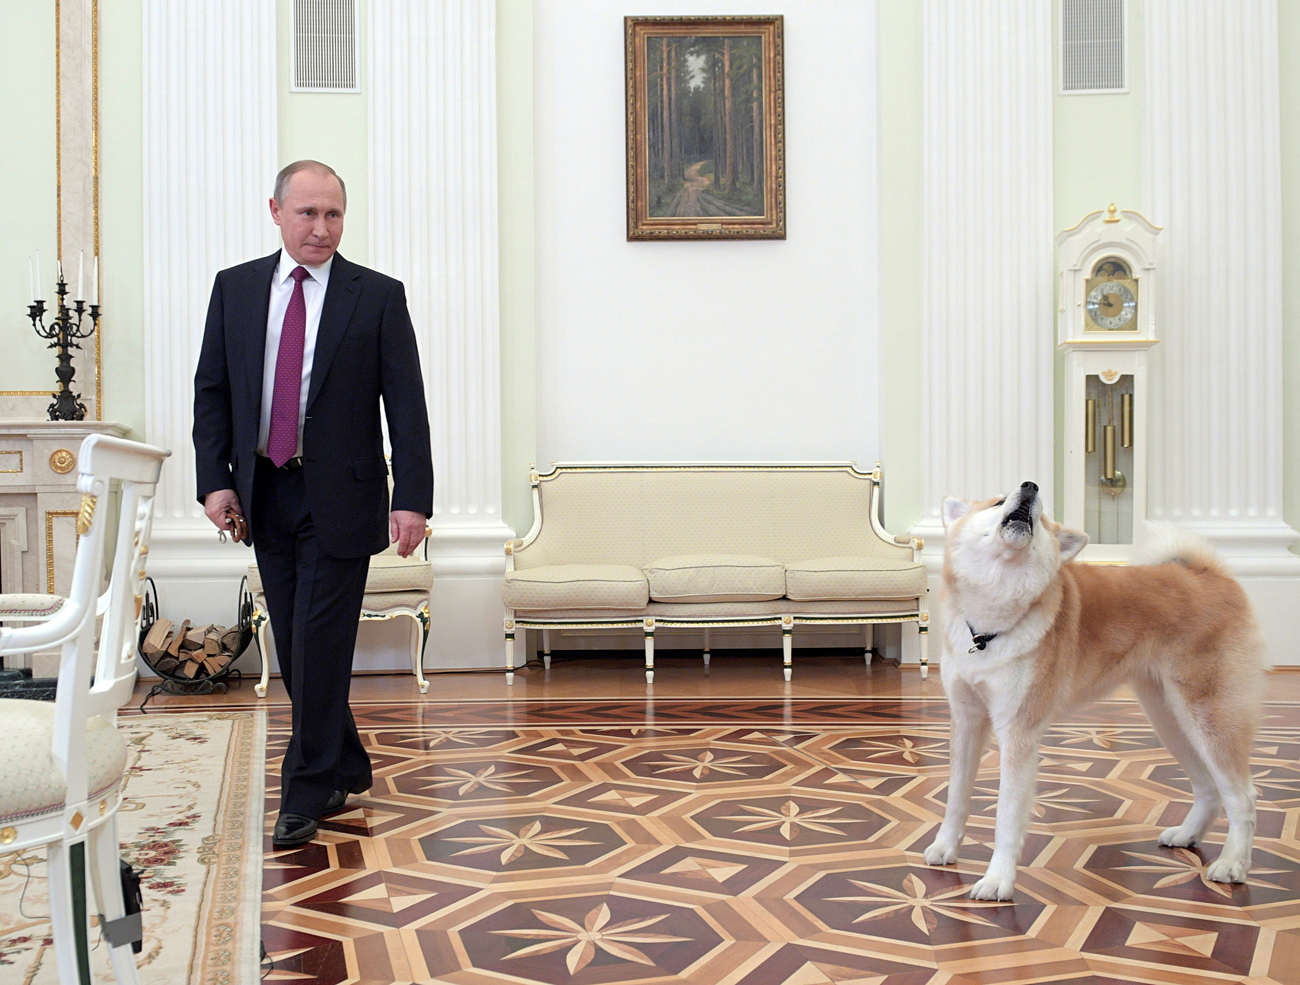 Russian President Vladimir Putin enters a hall with his dog Yume before giving an interview to journalists from Japan.